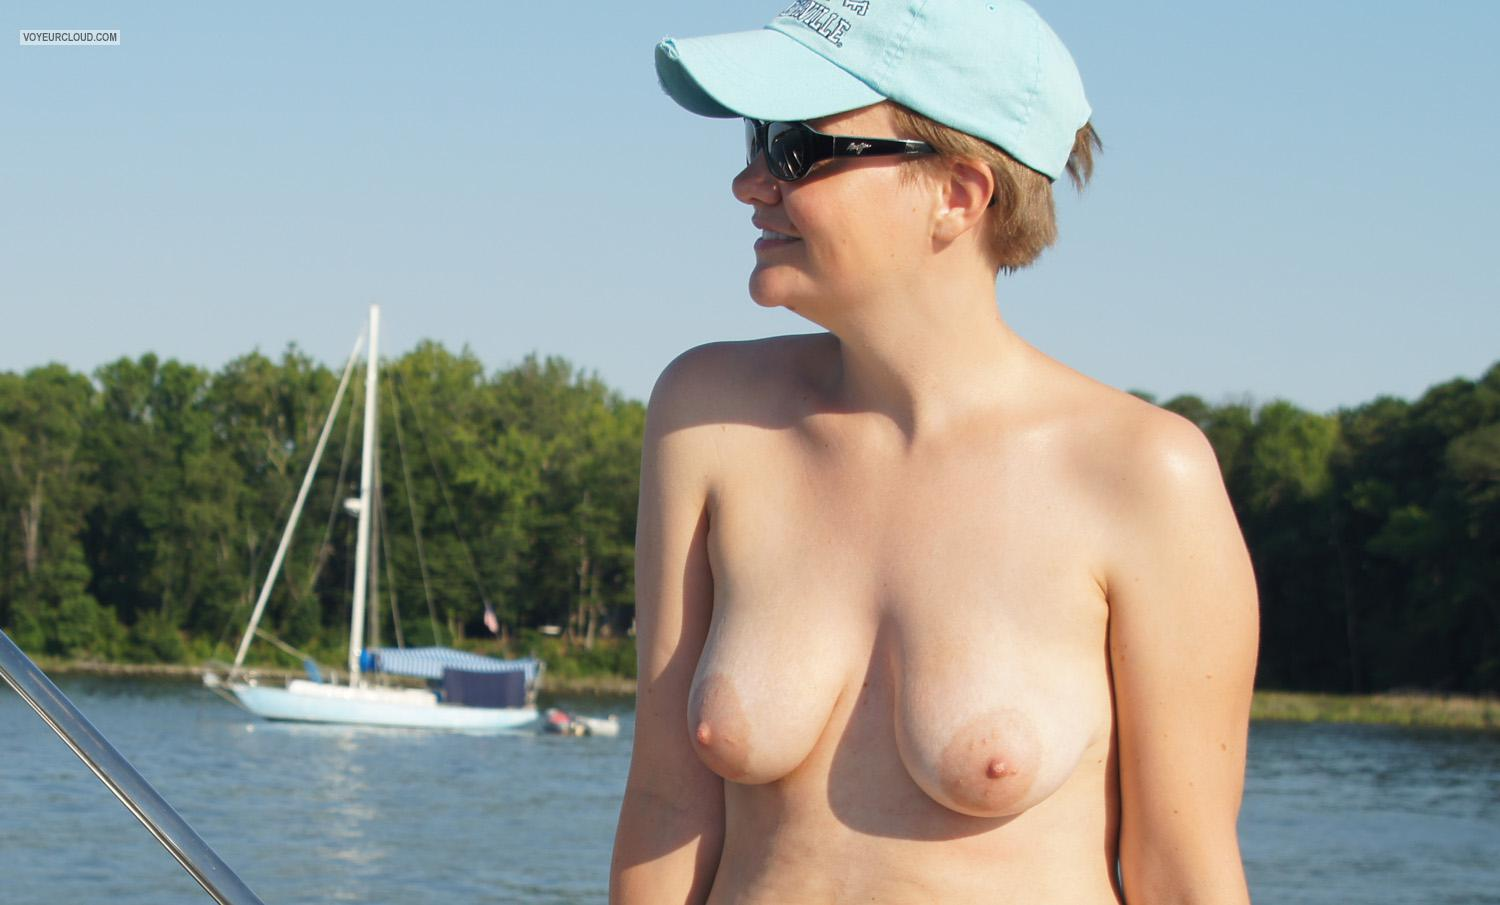 Medium Tits Of My Girlfriend Topless Wicked